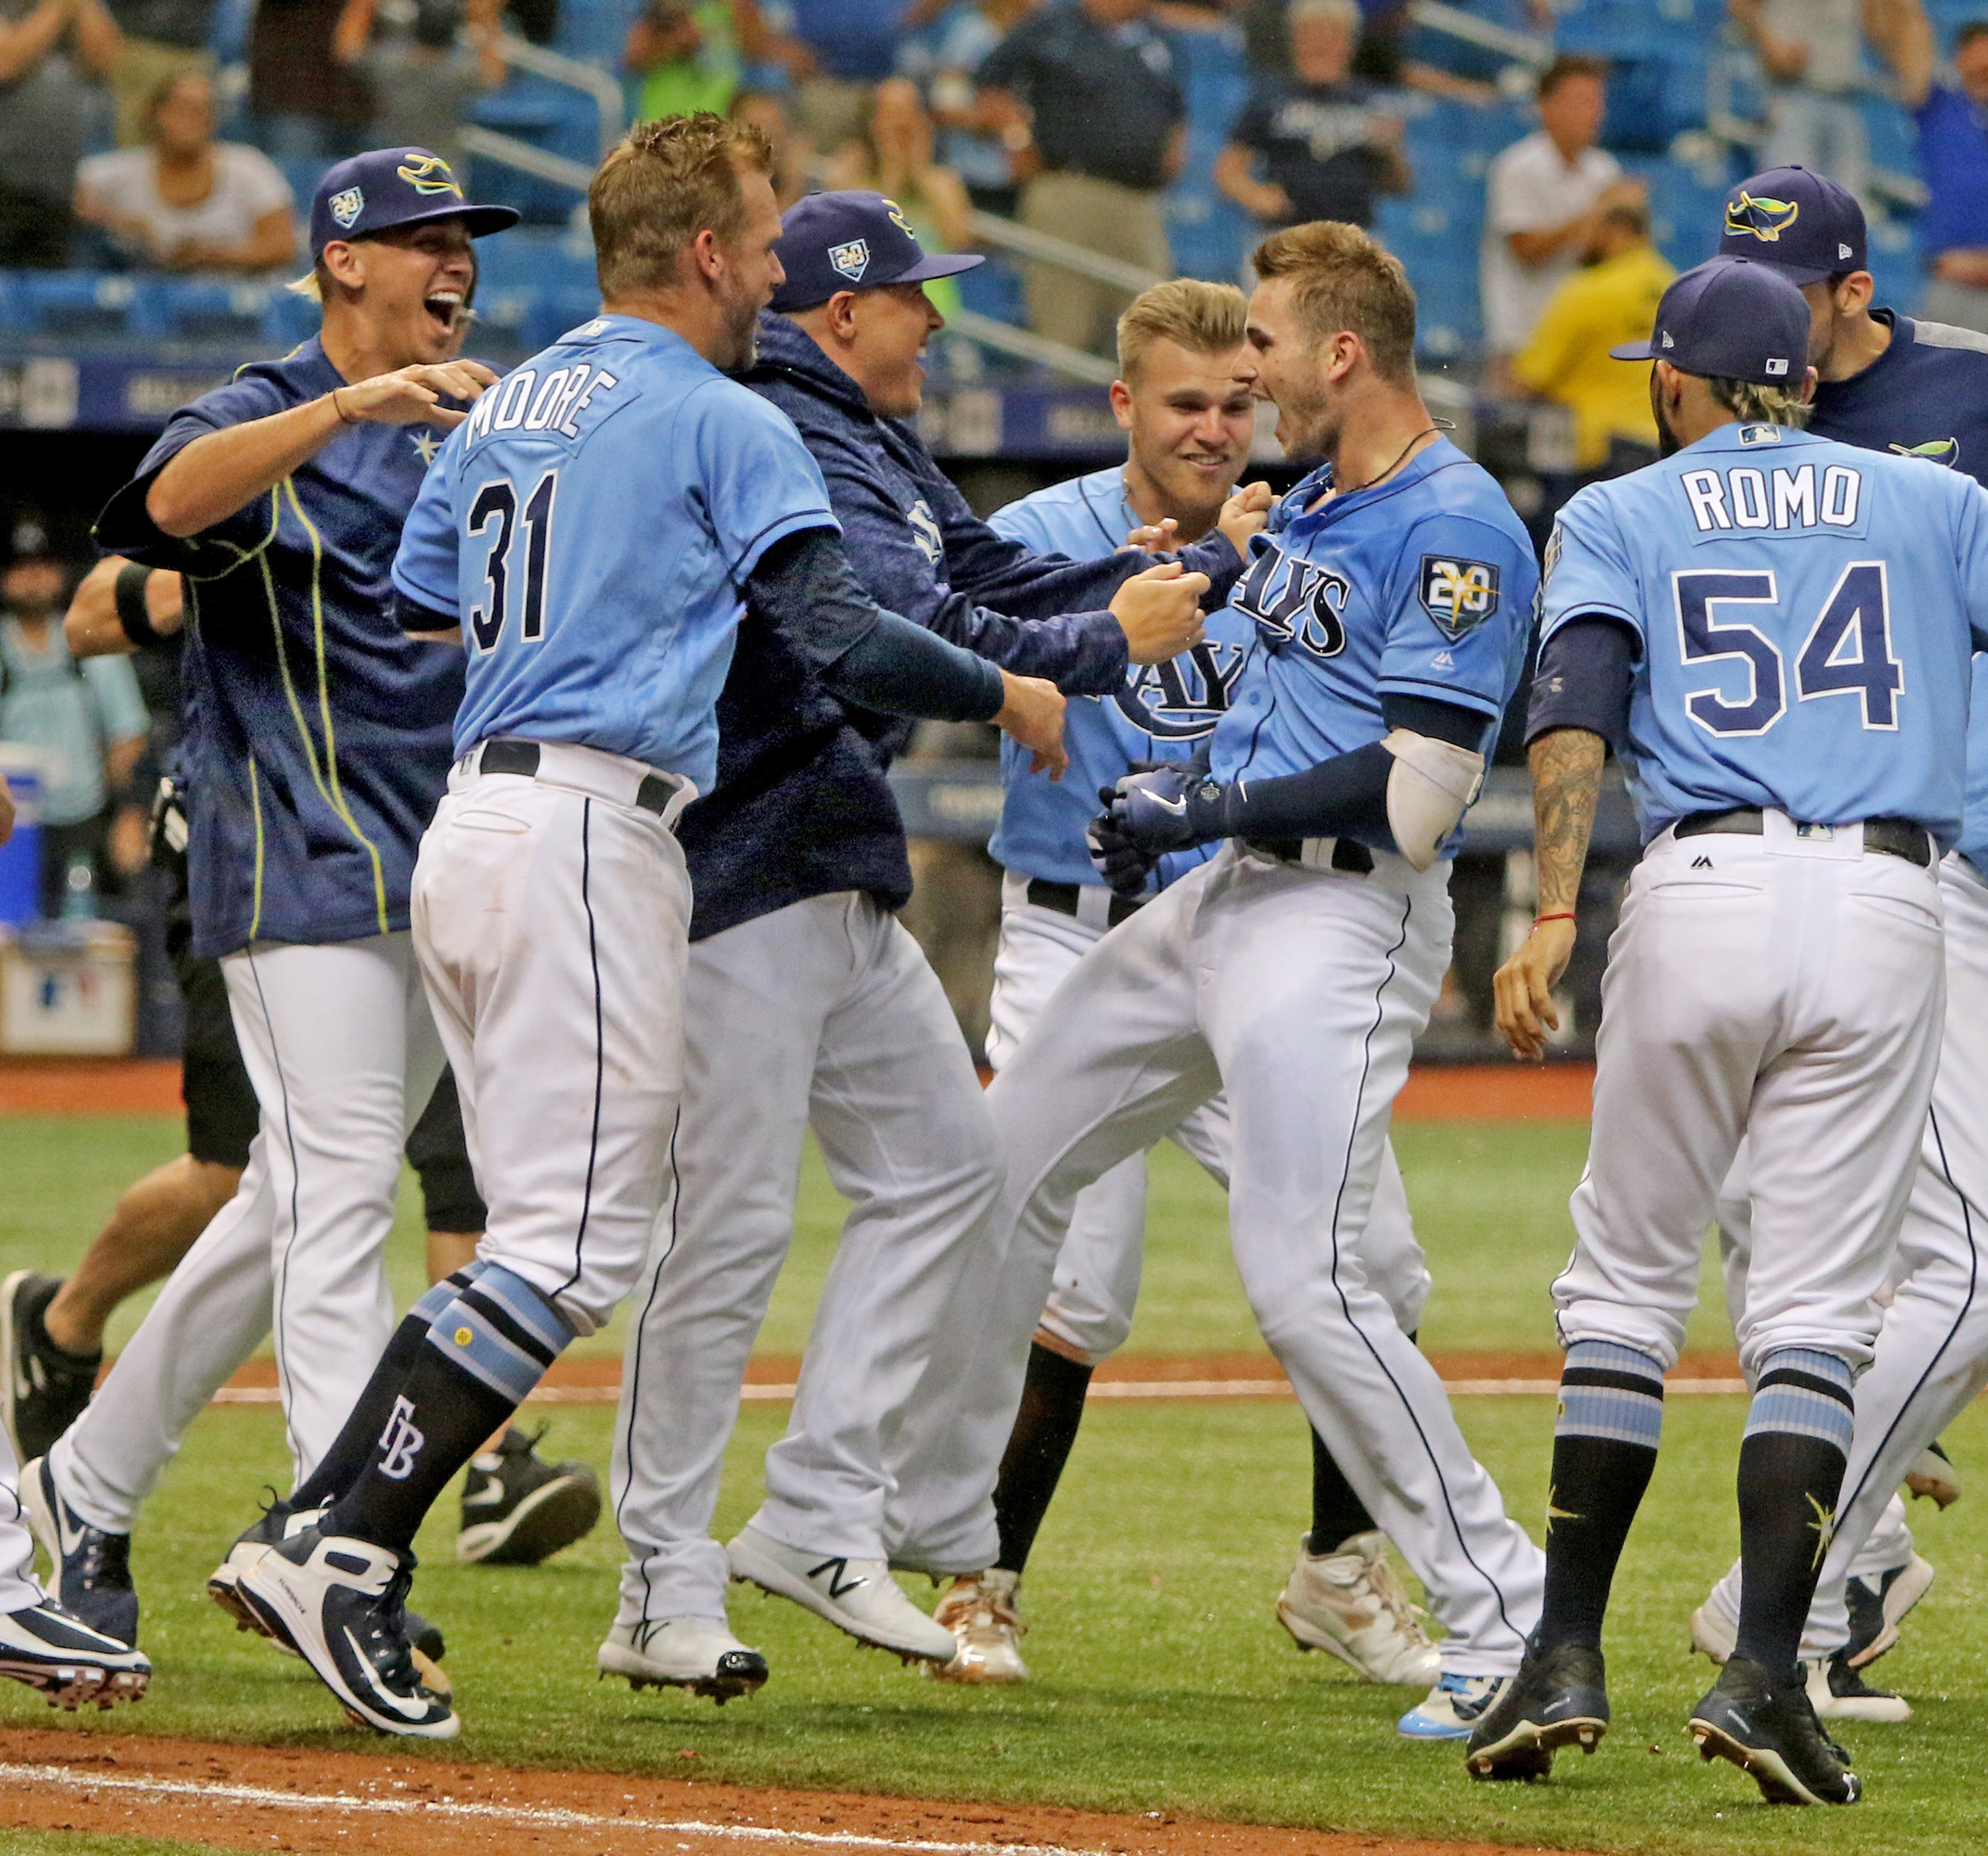 7a3157f9 Having the Rays play in two cities is a really dumb idea - The ...